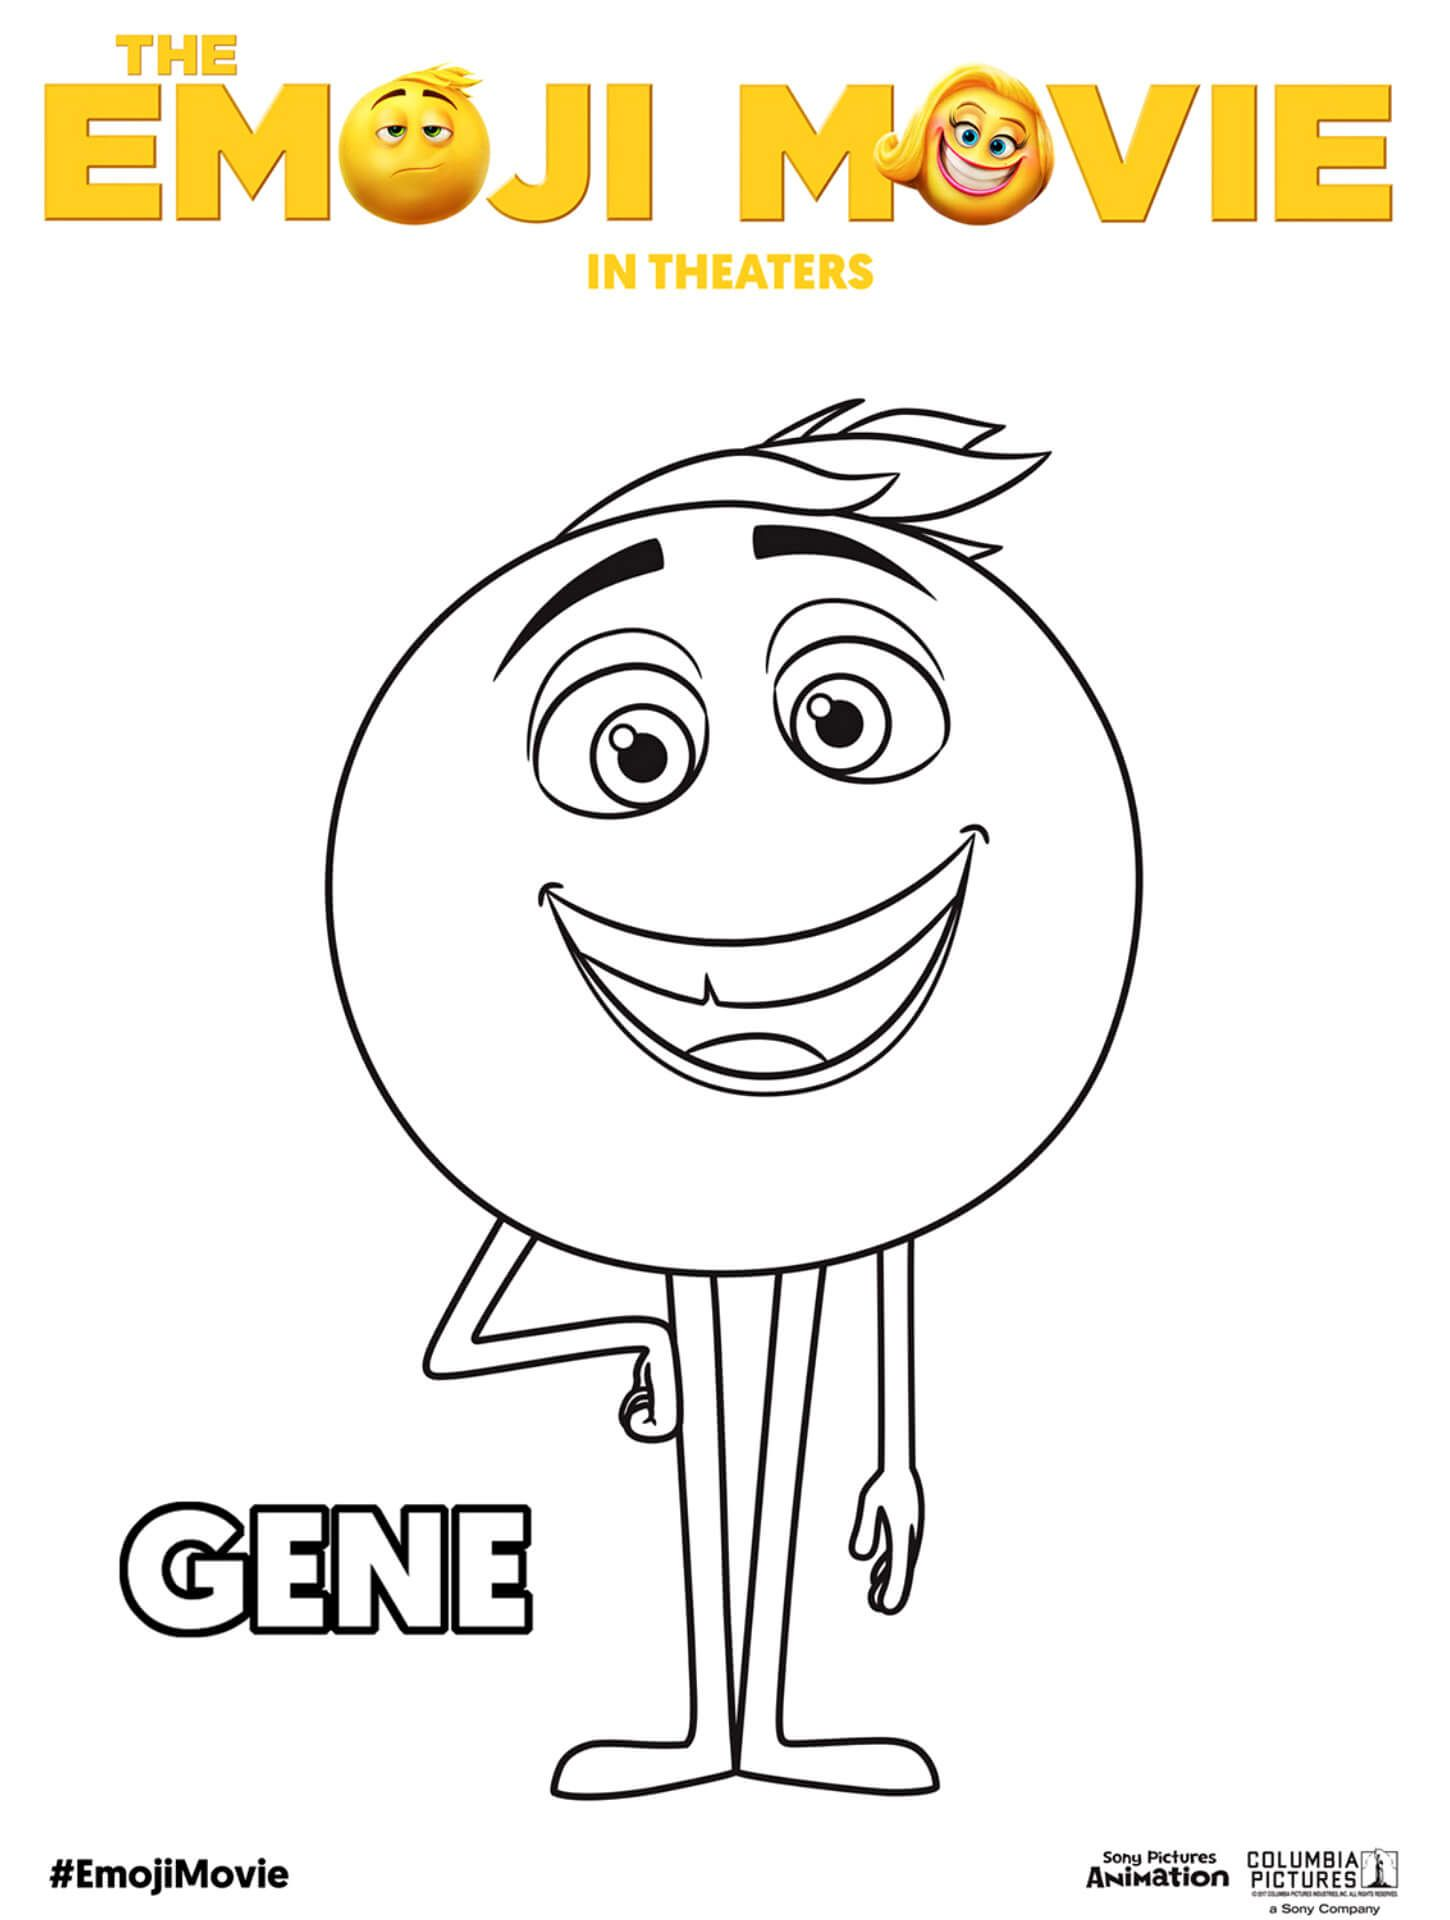 The Emoji Movie Gene Coloring Pages Emoji Coloring Pages Emoji Movie Coloring Pages